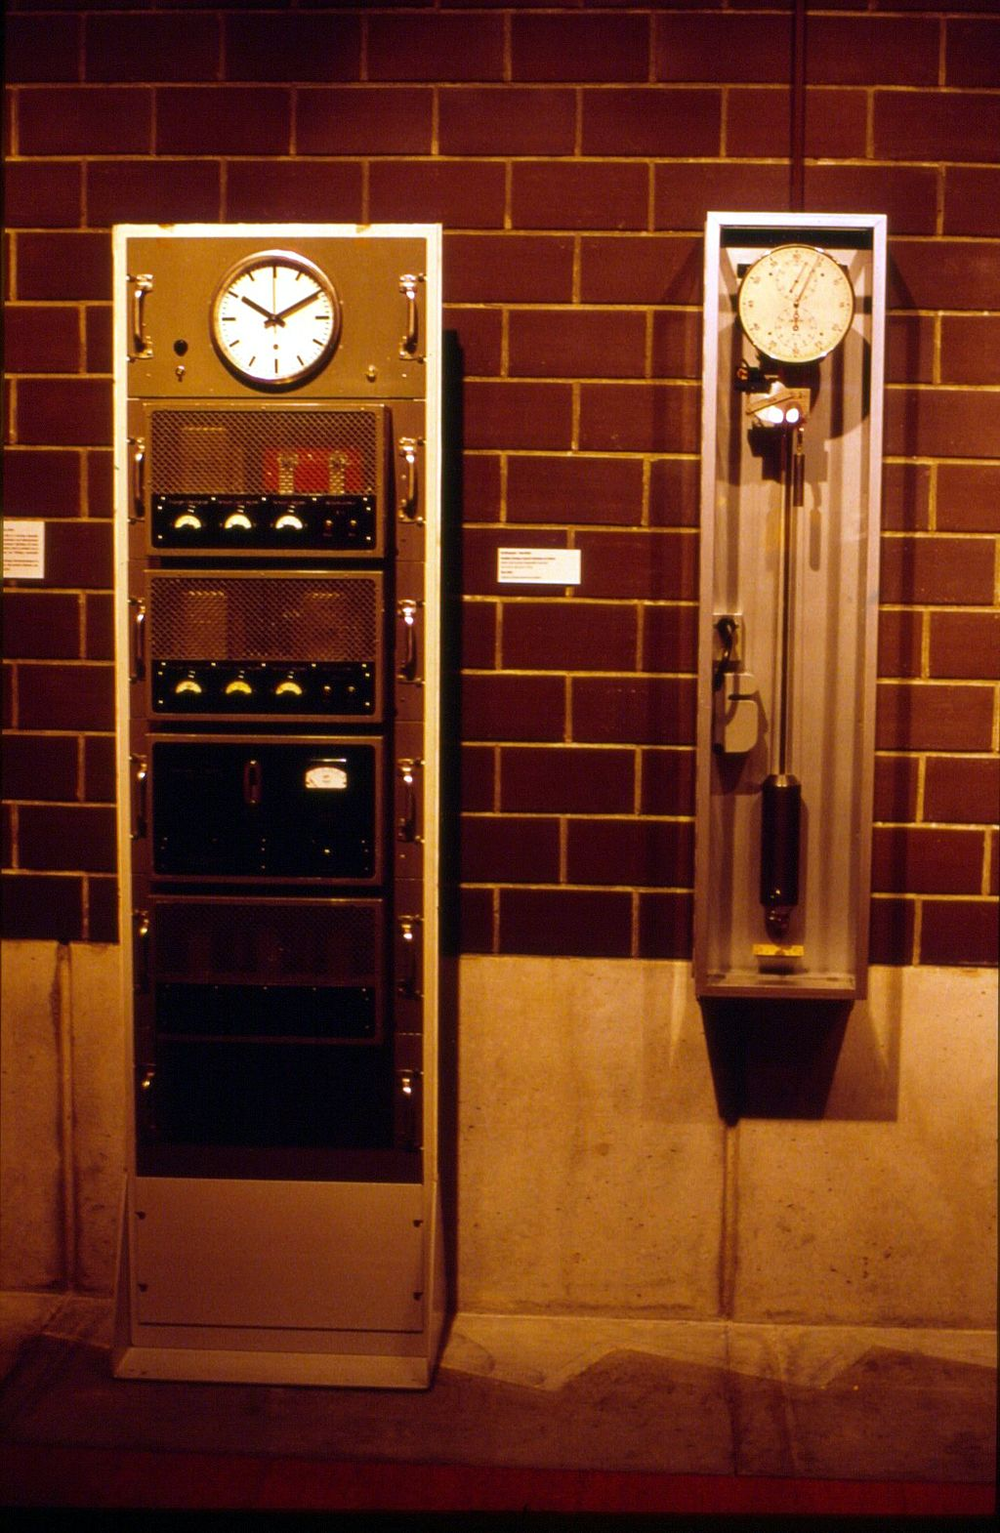 The first Swiss quartz clock, which was made after WW II (left), on display at the International Museum of Horology in La Chaux-de-Fonds.